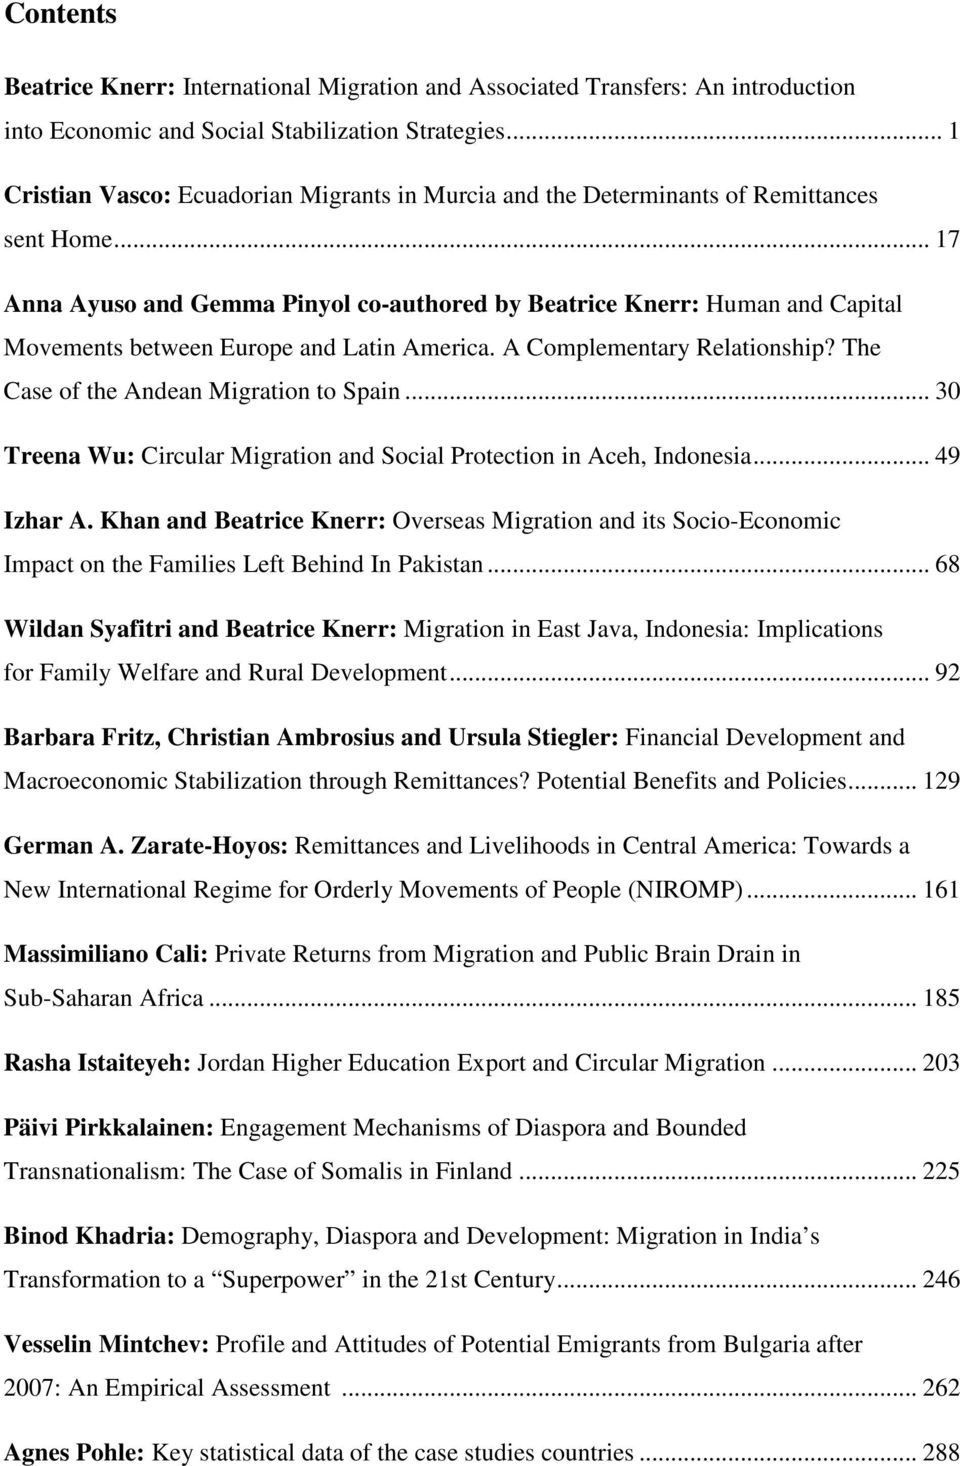 .. 17 Anna Ayuso and Gemma Pinyol co-authored by Beatrice Knerr: Human and Capital Movements between Europe and Latin America. A Complementary Relationship? The Case of the Andean Migration to Spain.